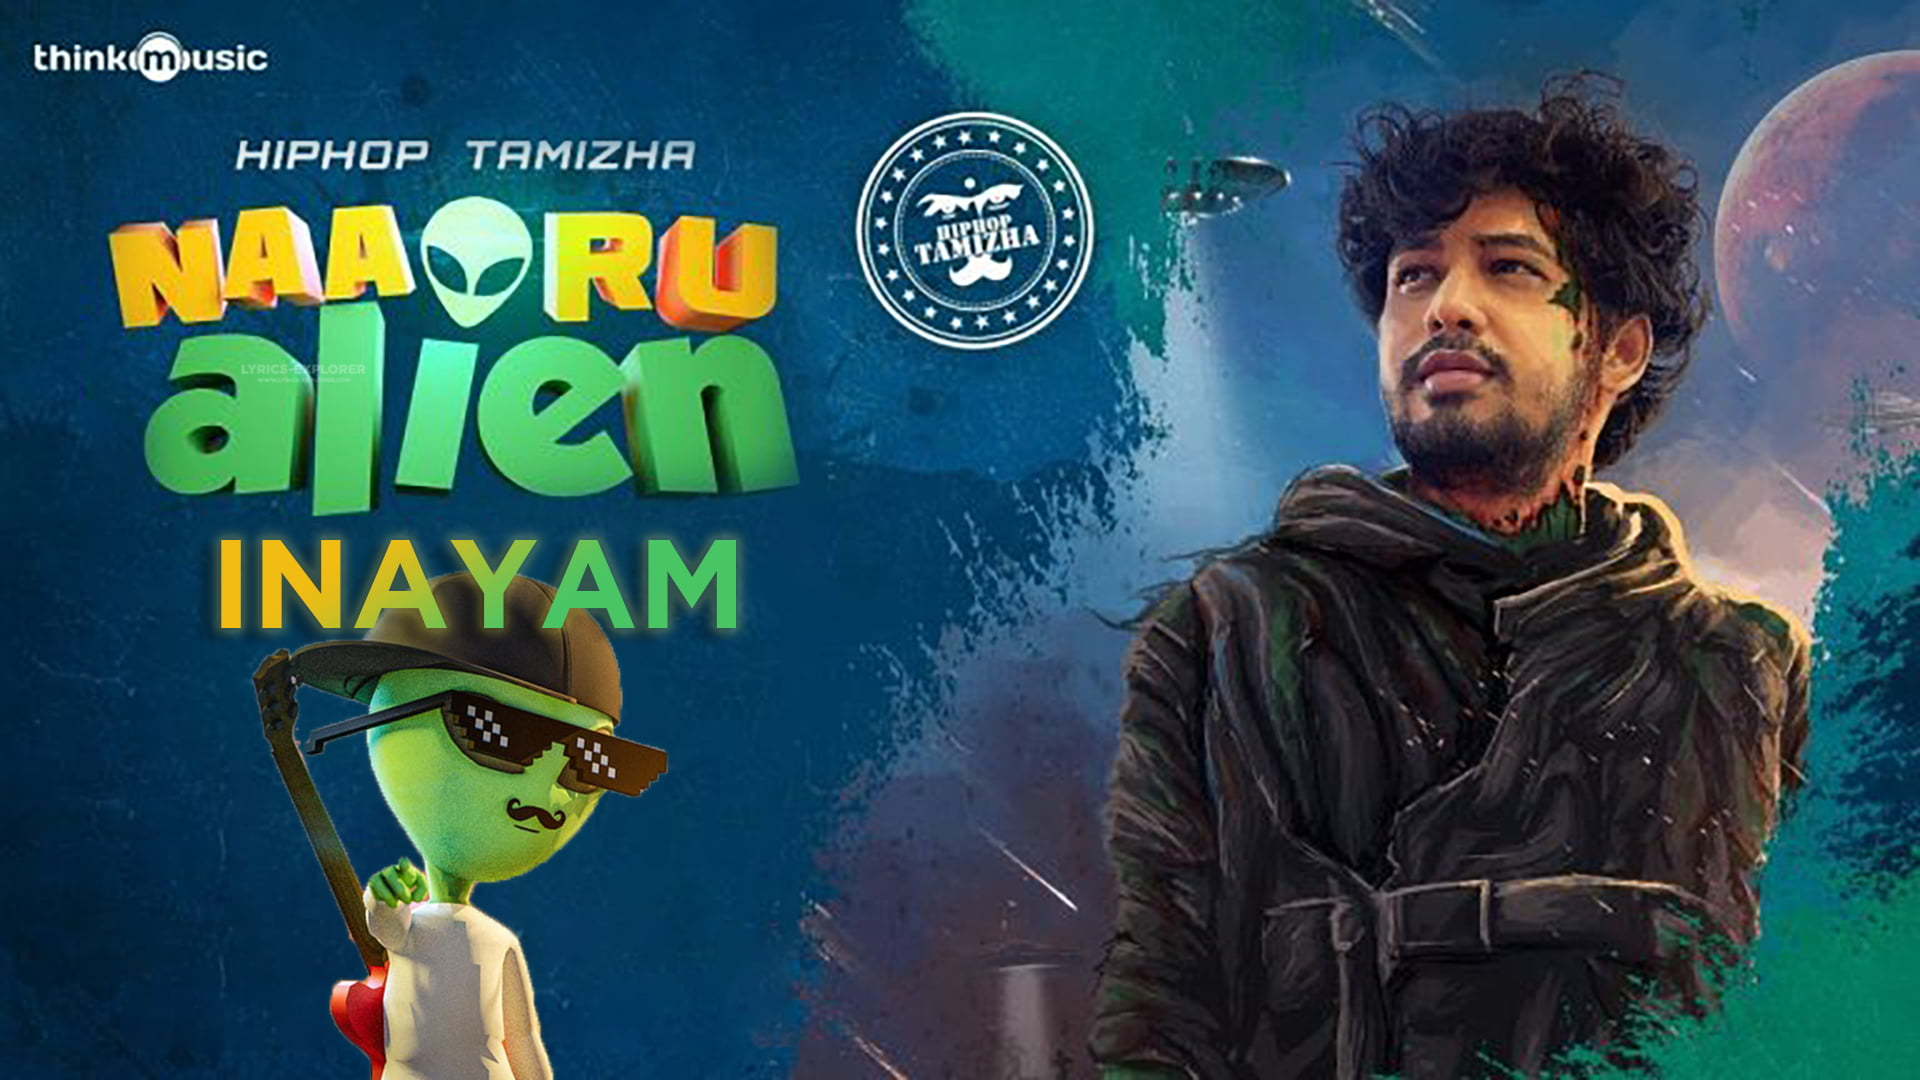 You are currently viewing Inayam song lyrics free Naa Oru Alien Hiphop Tamizha